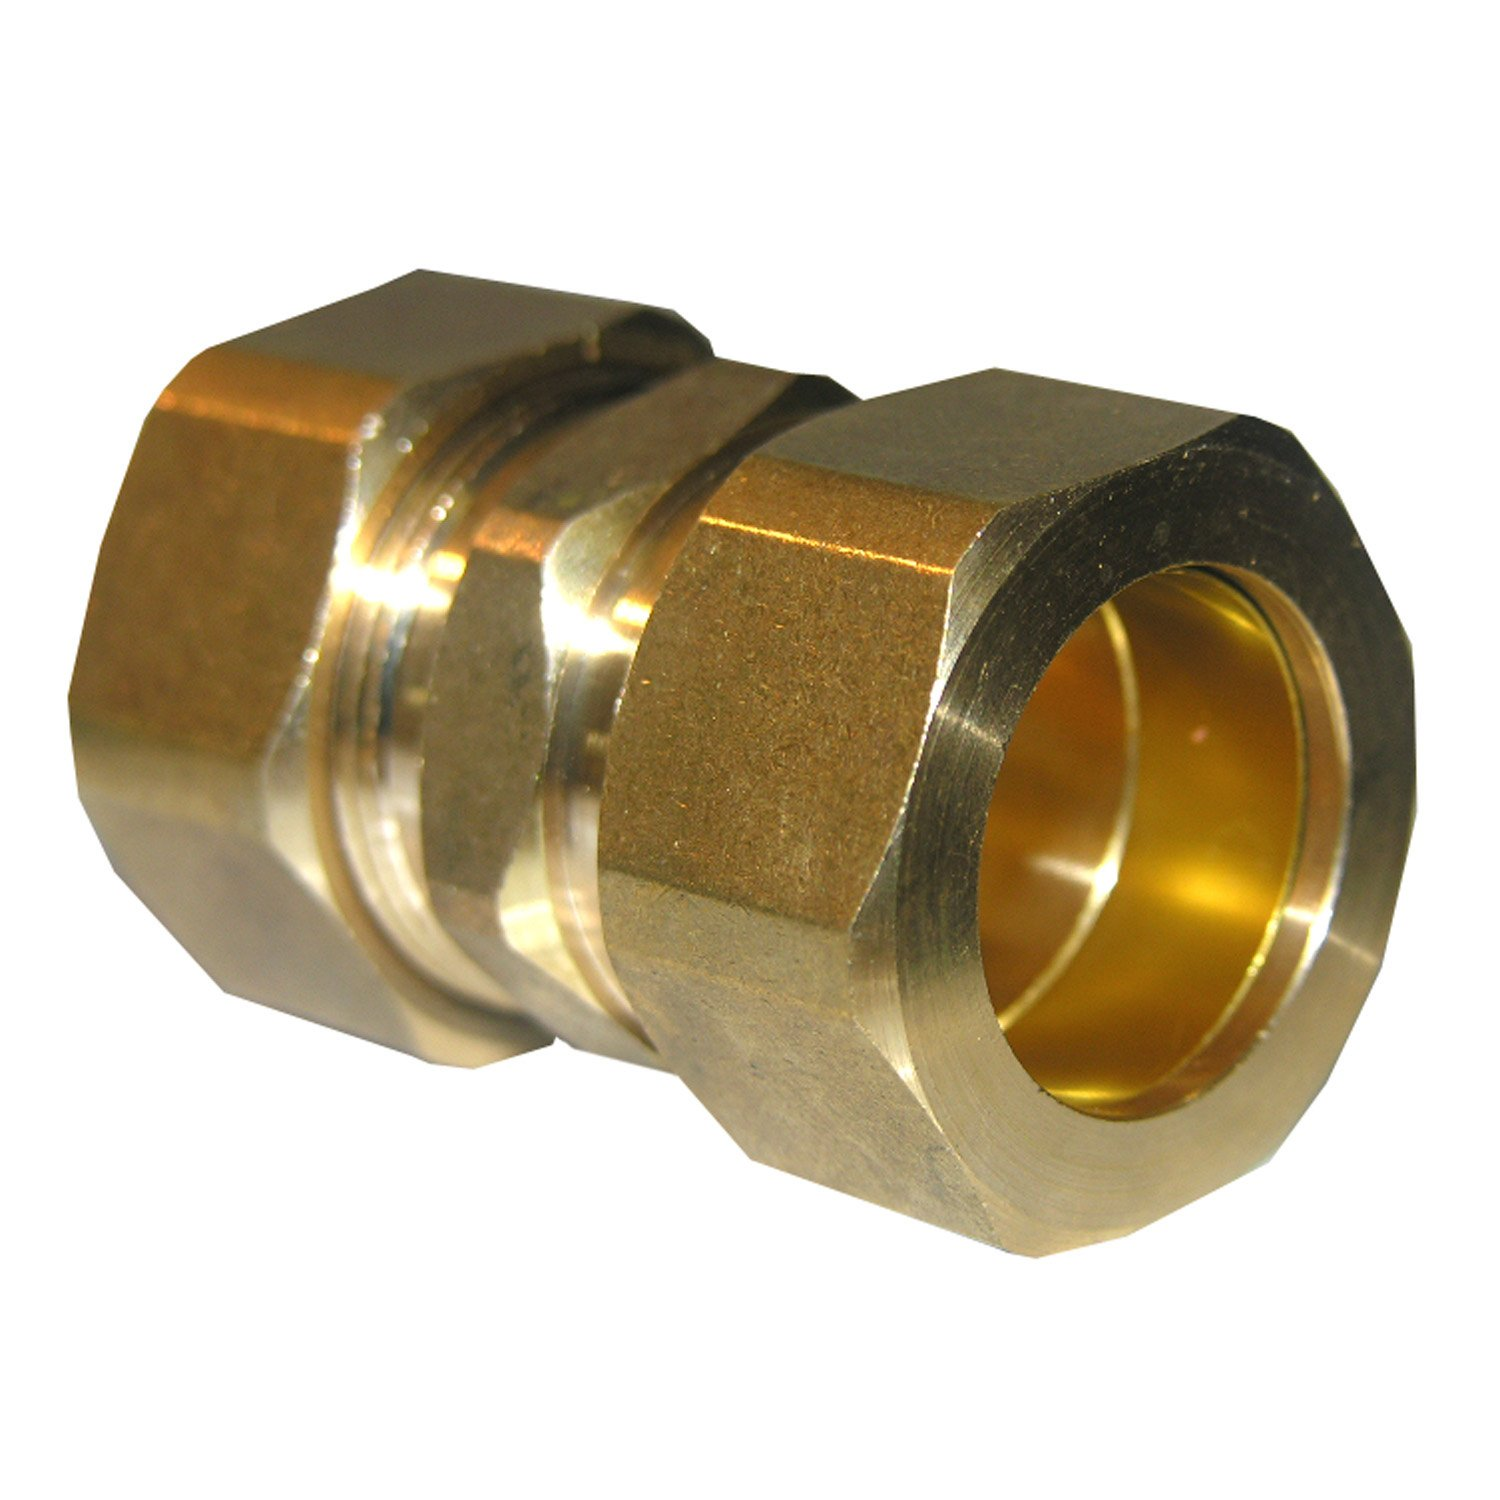 LASCO 17-6273 7/8-Inch Compression Brass Union